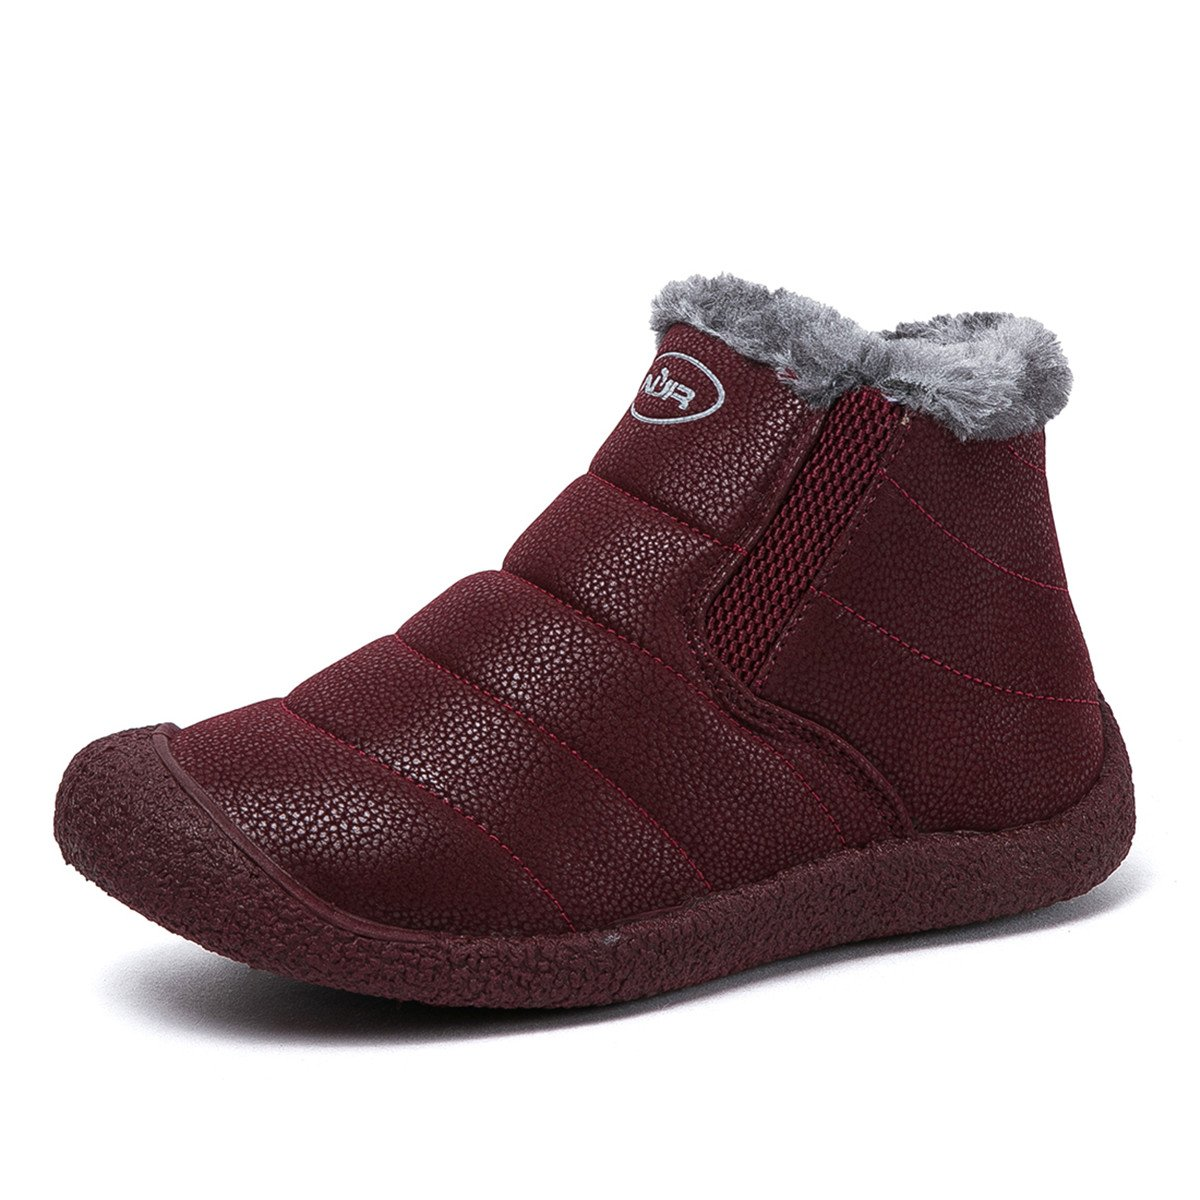 Gracosy Snow Boots, Winter Outdoor Slip On Ankle Snow Booties With Fur Lined, Unisex B075YWZXTL Tag 41|Wine Red